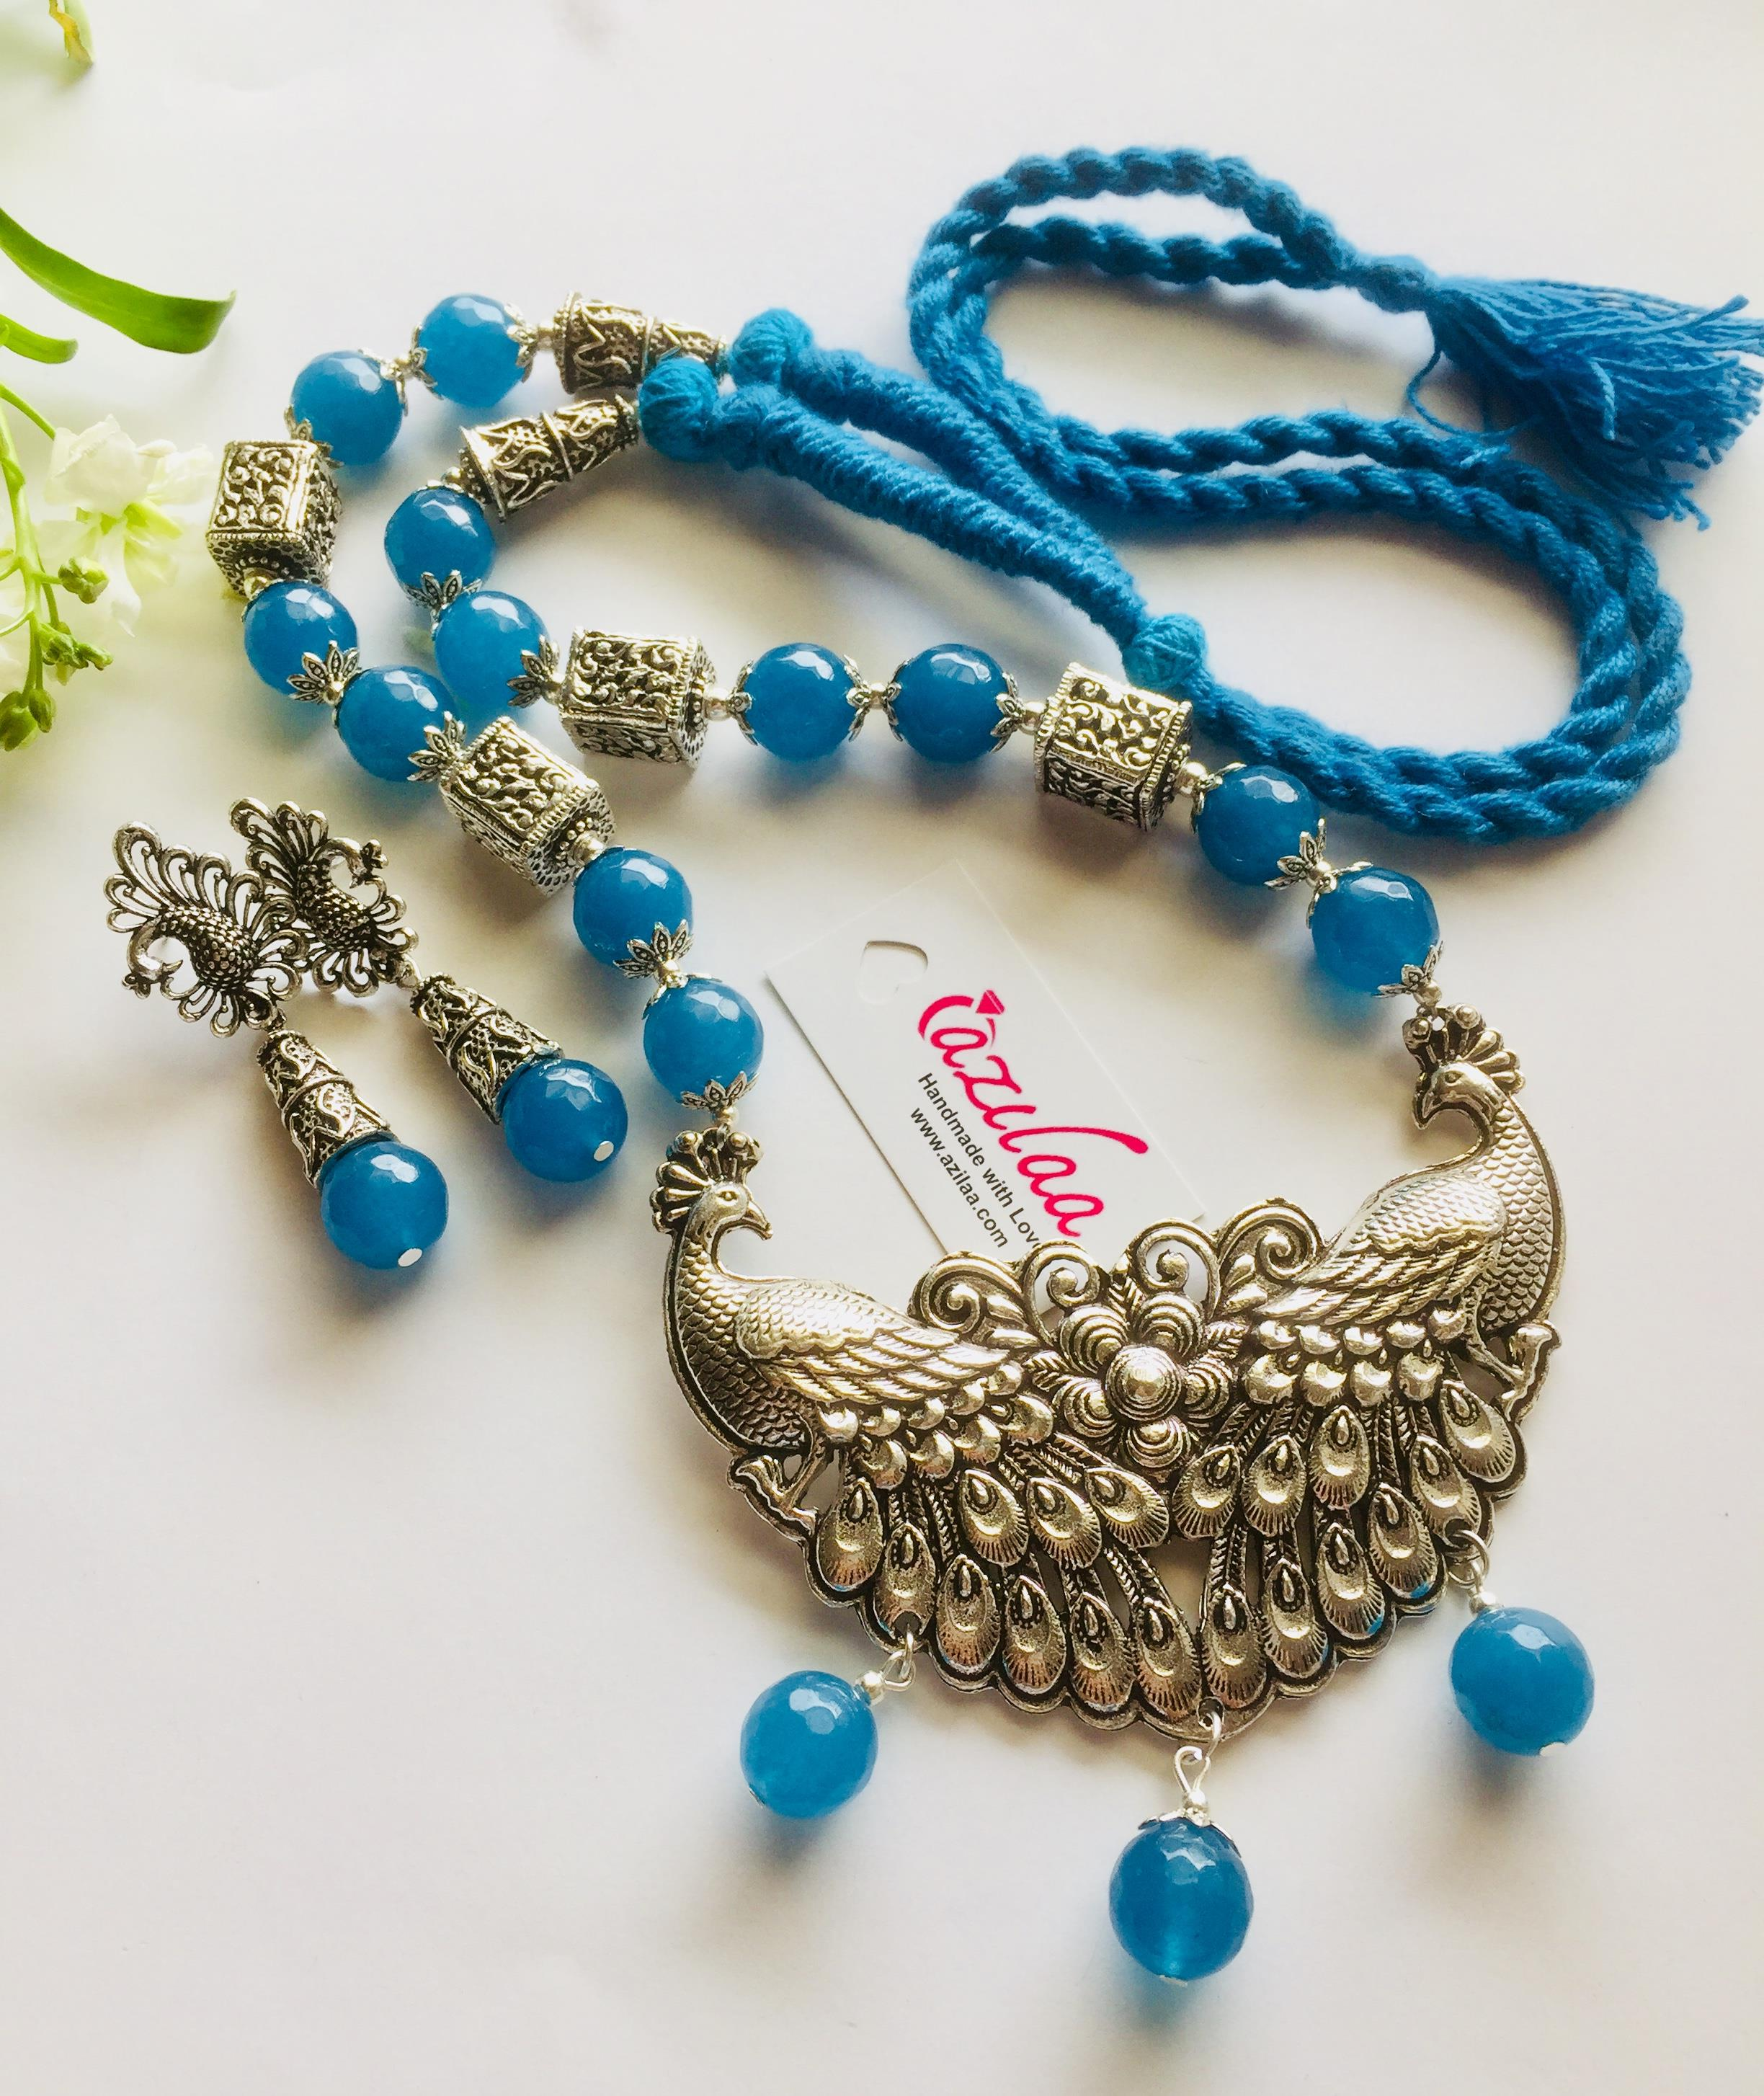 45307a8361dcb Blue Peacock Statement handmade necklace set